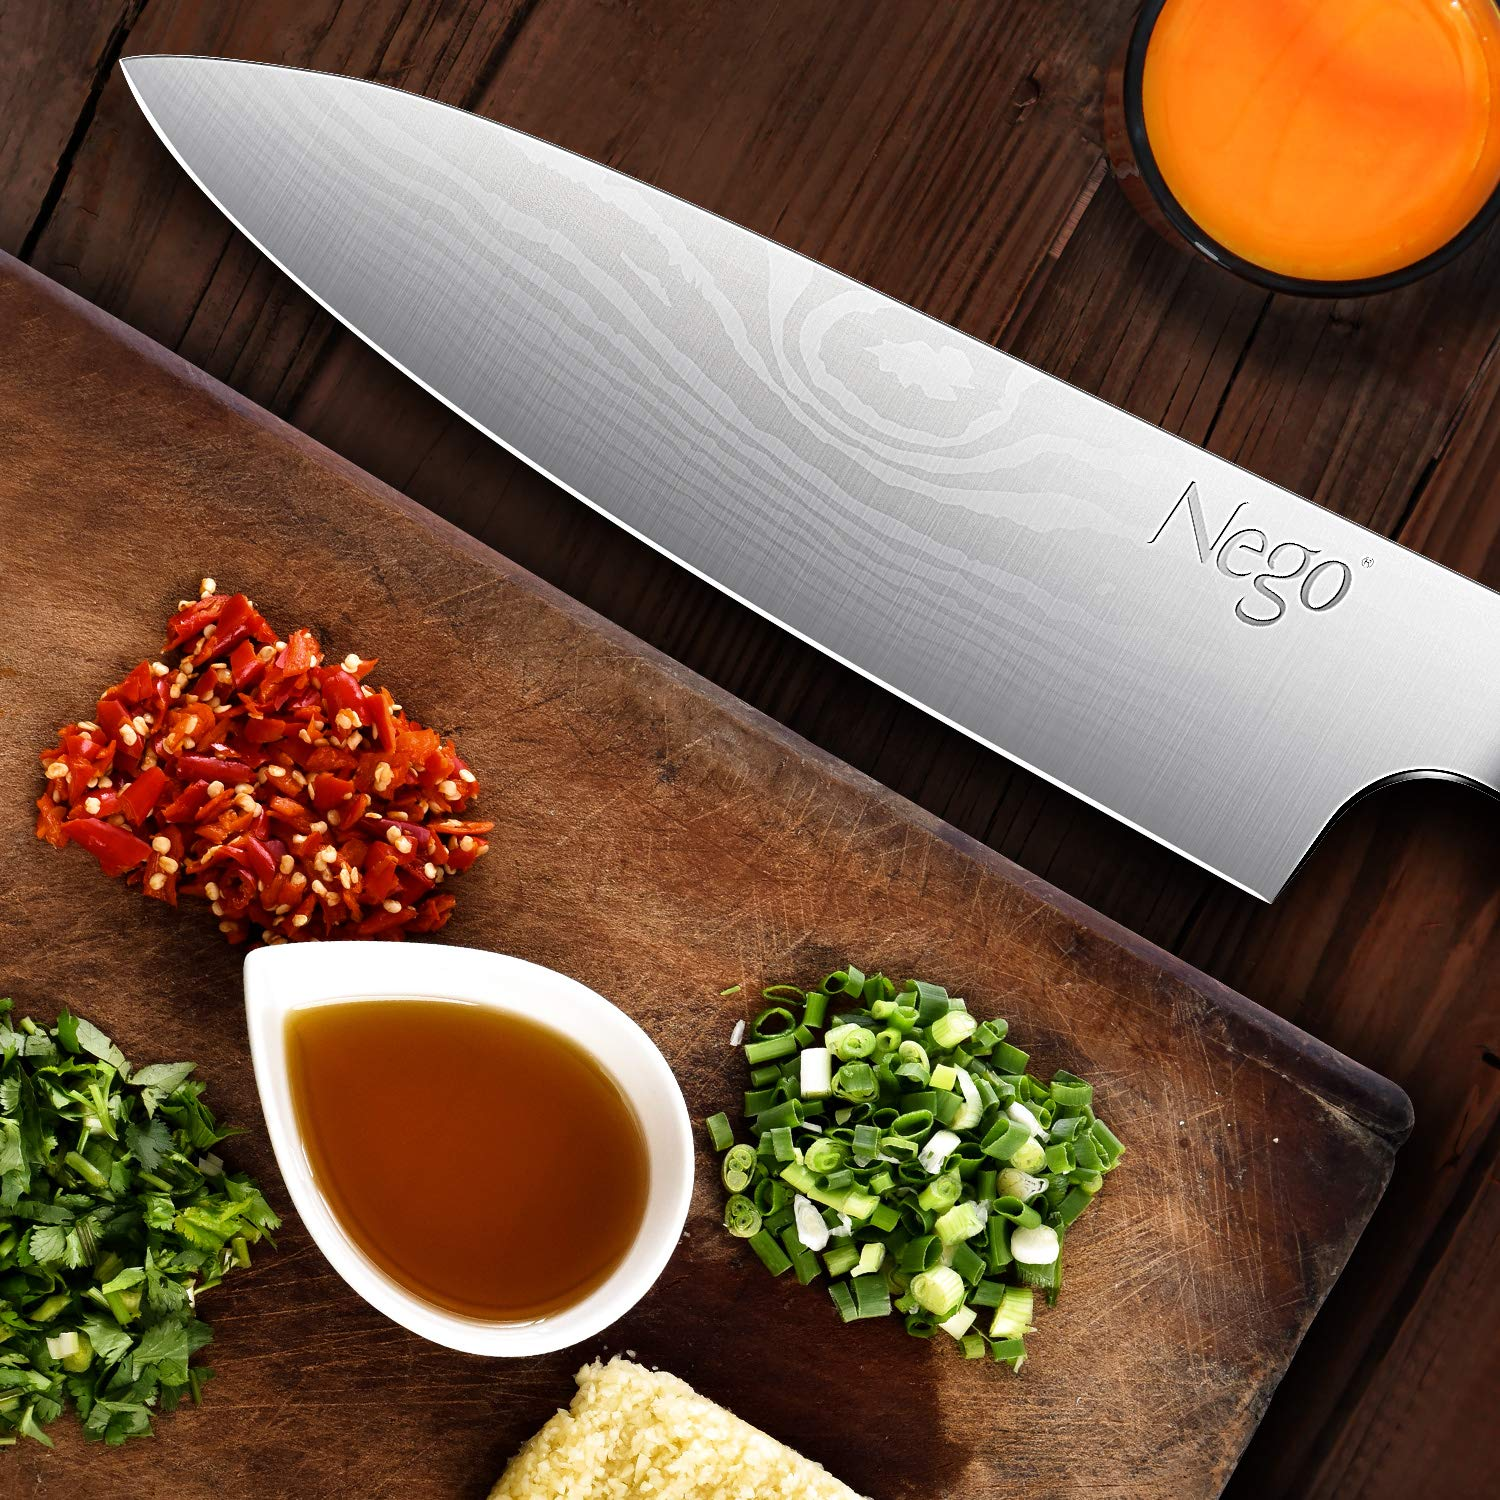 Chef Knife - Pro Chef knives 8 inch Cooking knife, German High Carbon Stainless Steel Razor Sharp Blade Stain Resistant, Best Choice for Restaurant and Home Kitchen by Nego (Image #4)